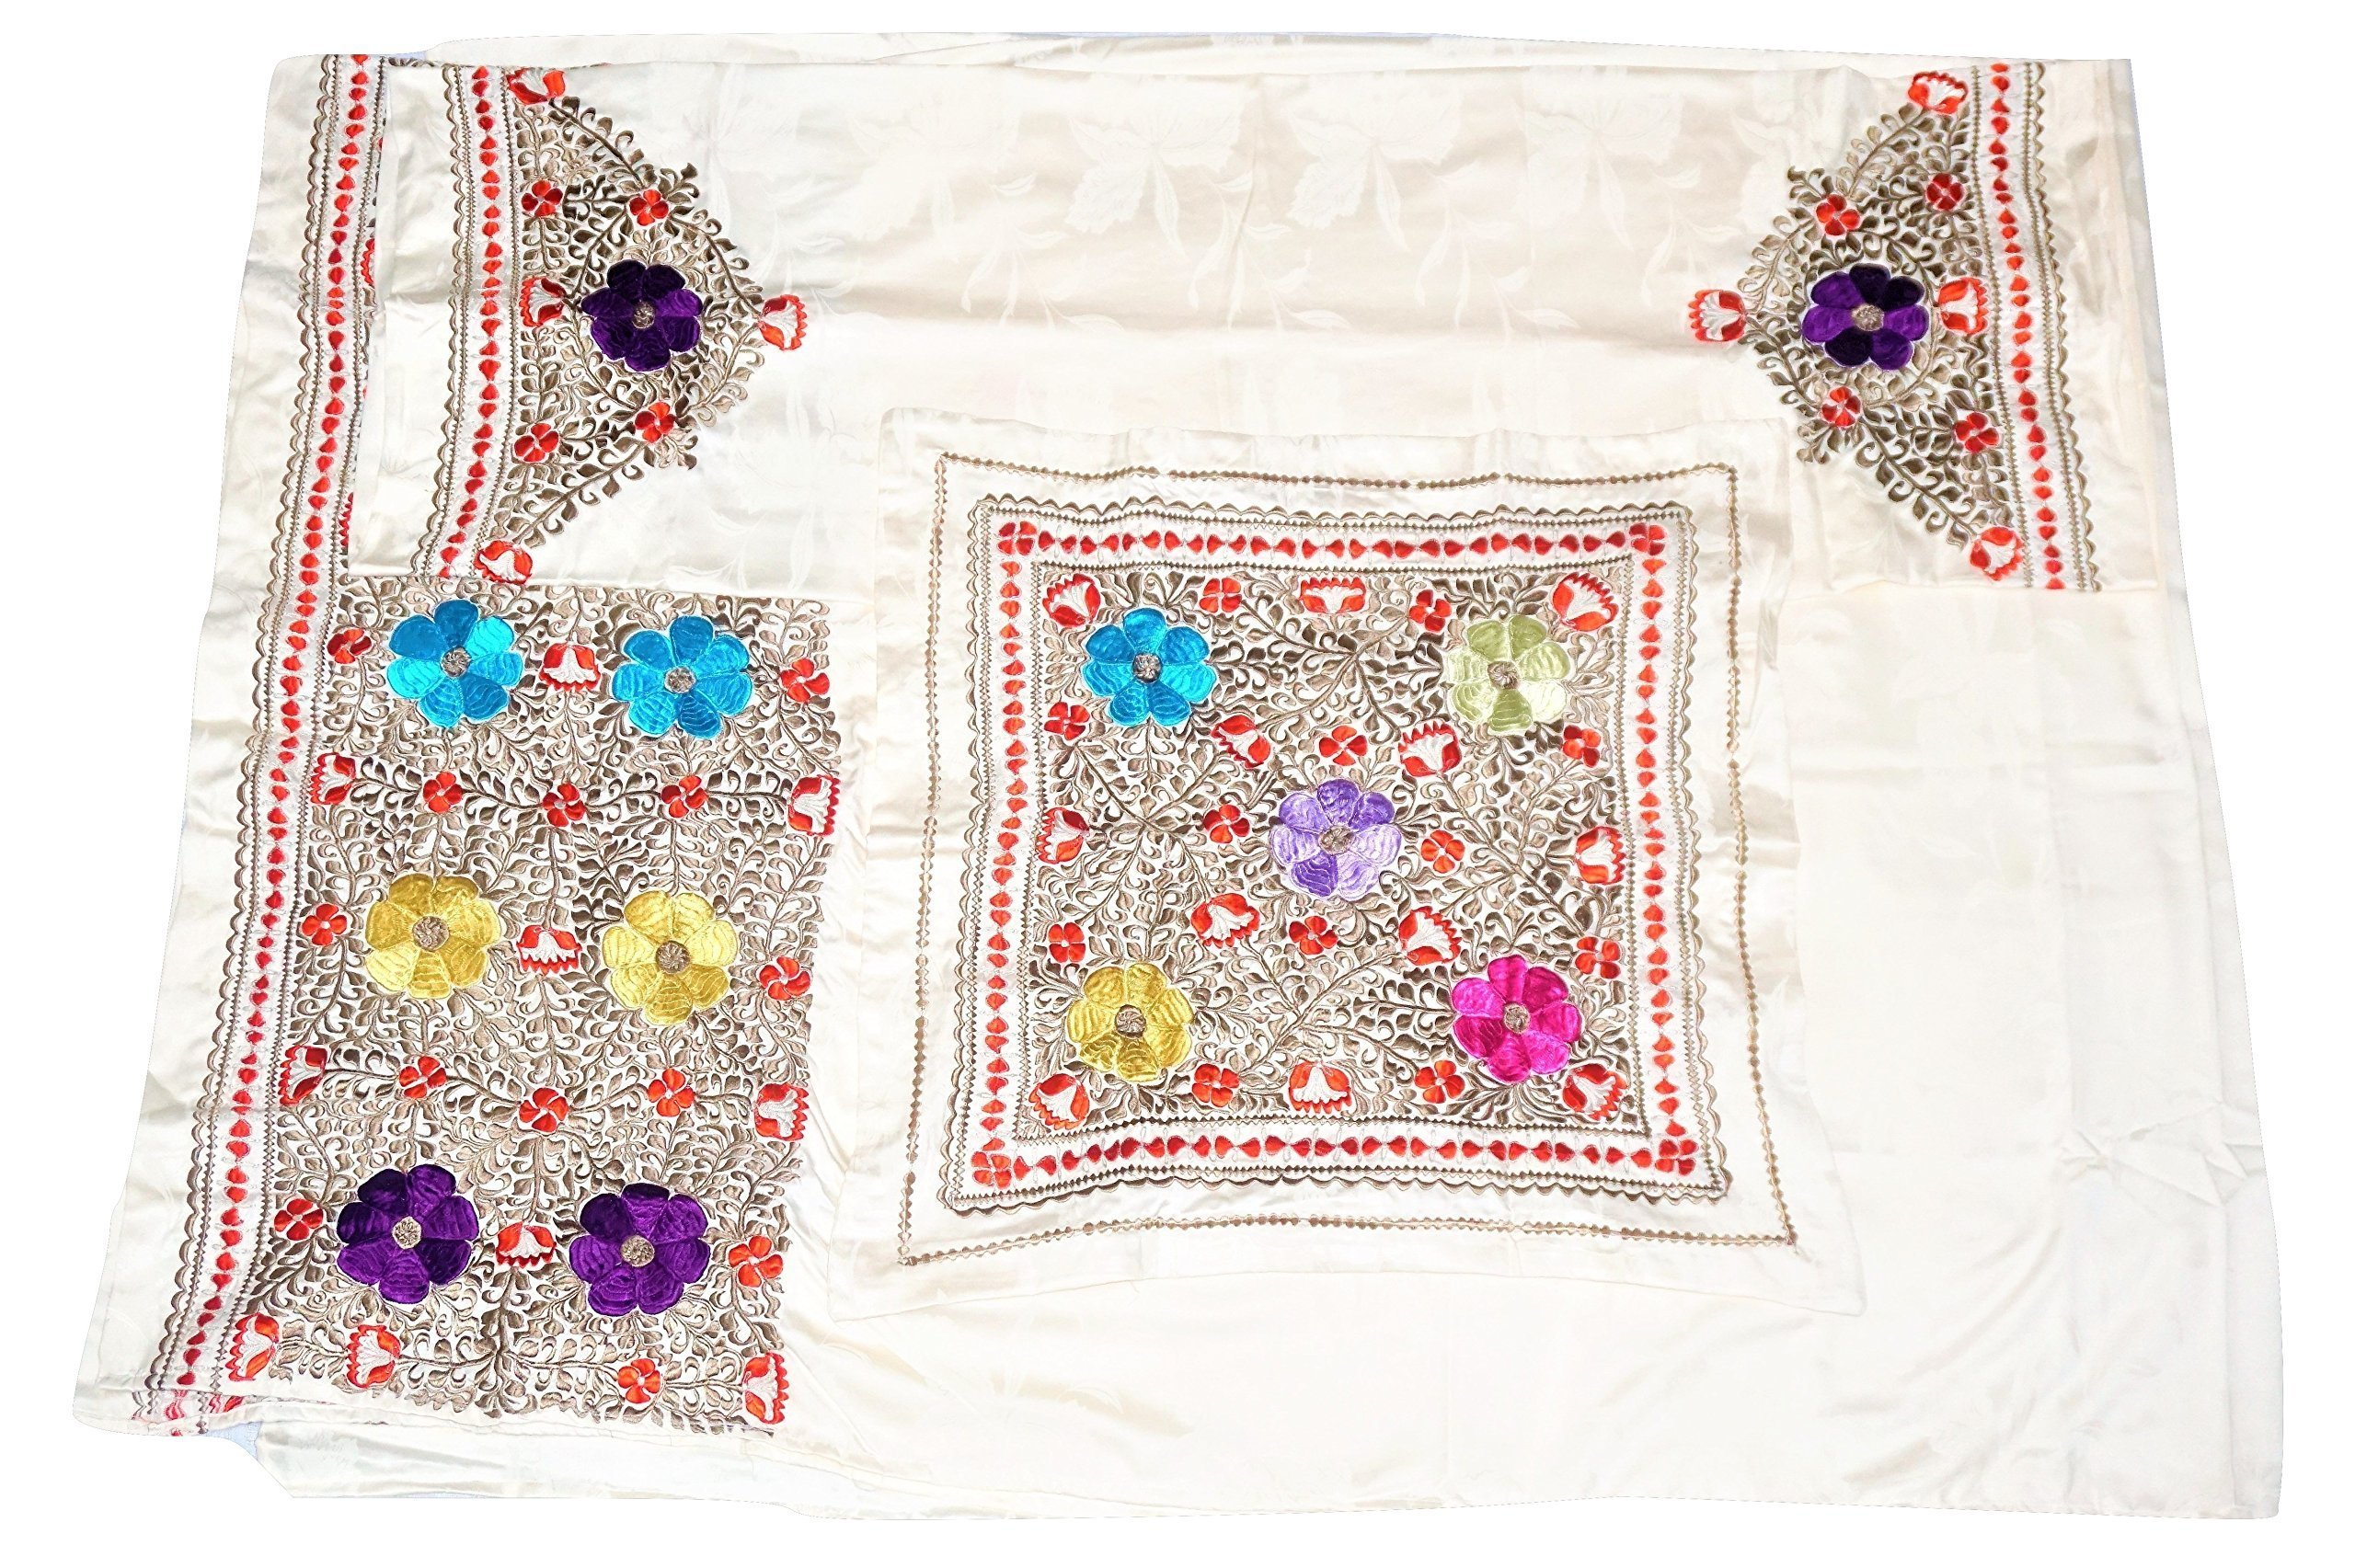 Moroccan Silk Embroidered Cotton Bedspread with Matching Pillowcases by Atlas Showroom